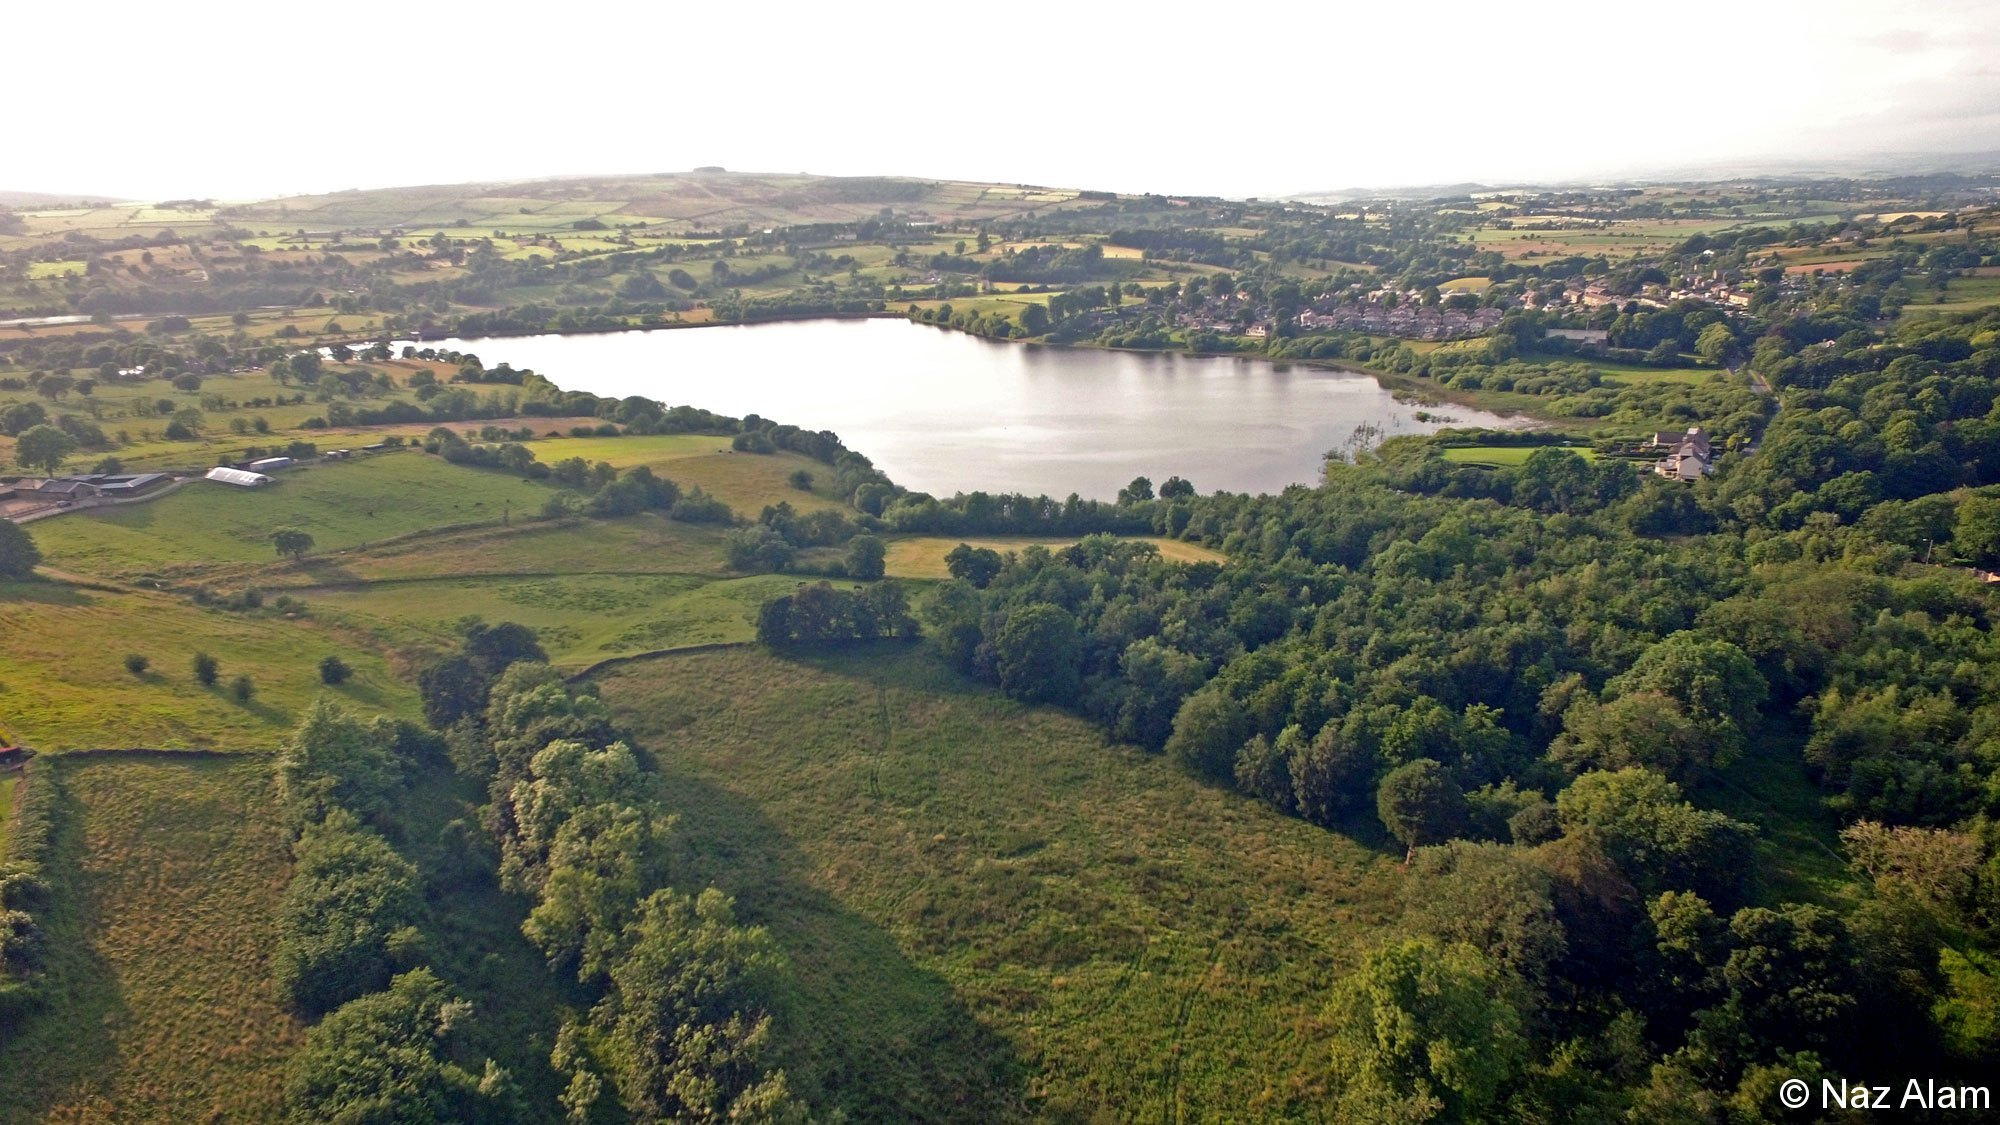 Lower Foulridge Reservoir area